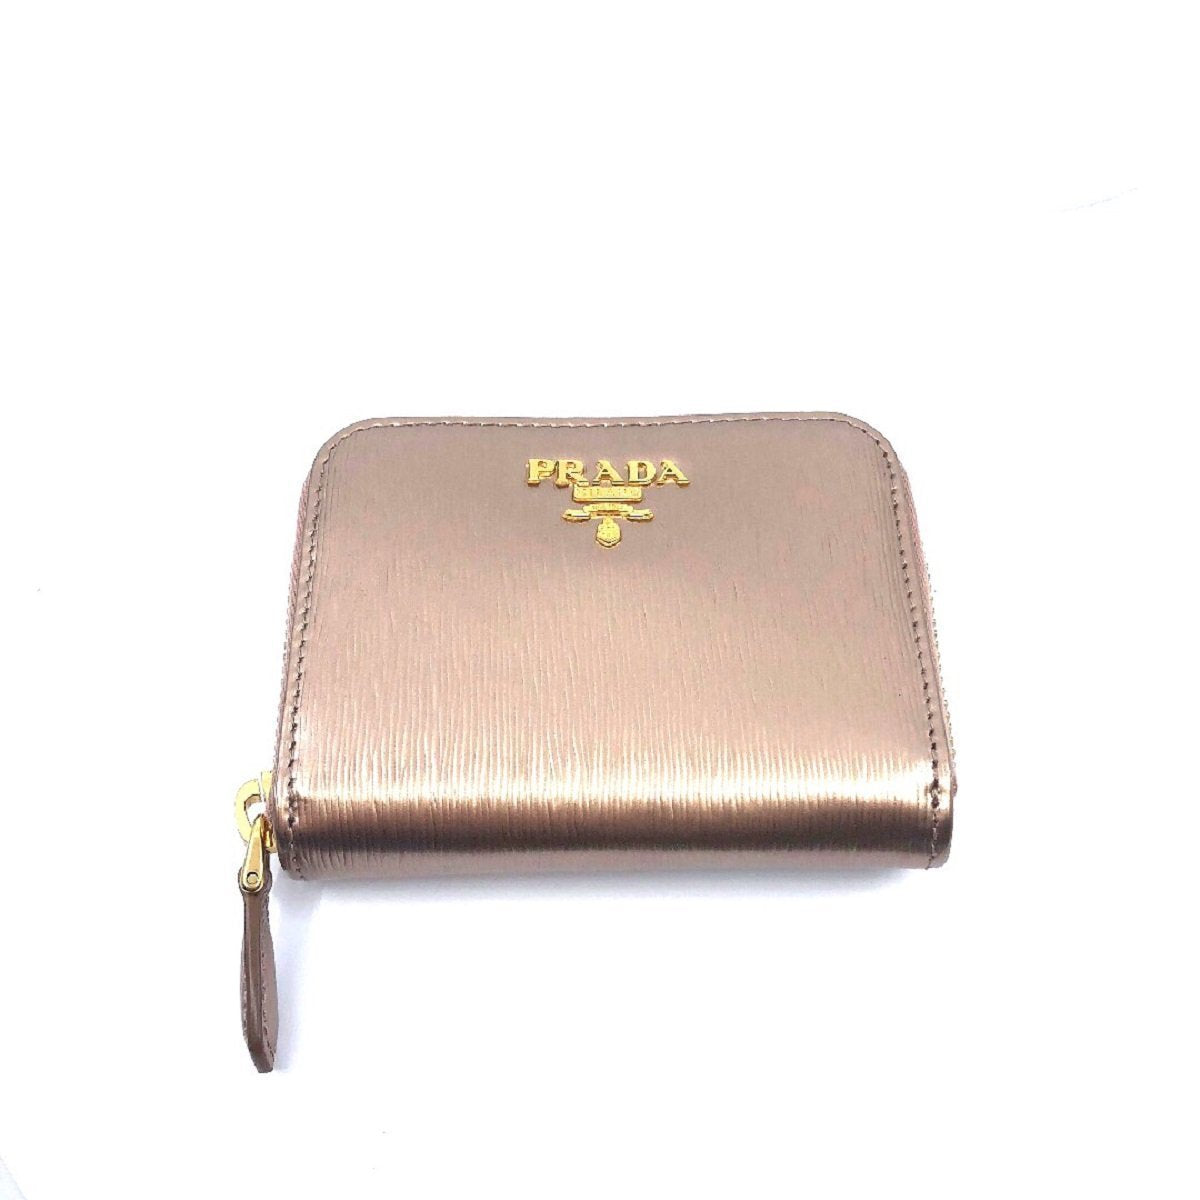 Prada Portamonete Vitello Move Rose Gold Metallic Leather Zip Around Wallet 1MM268